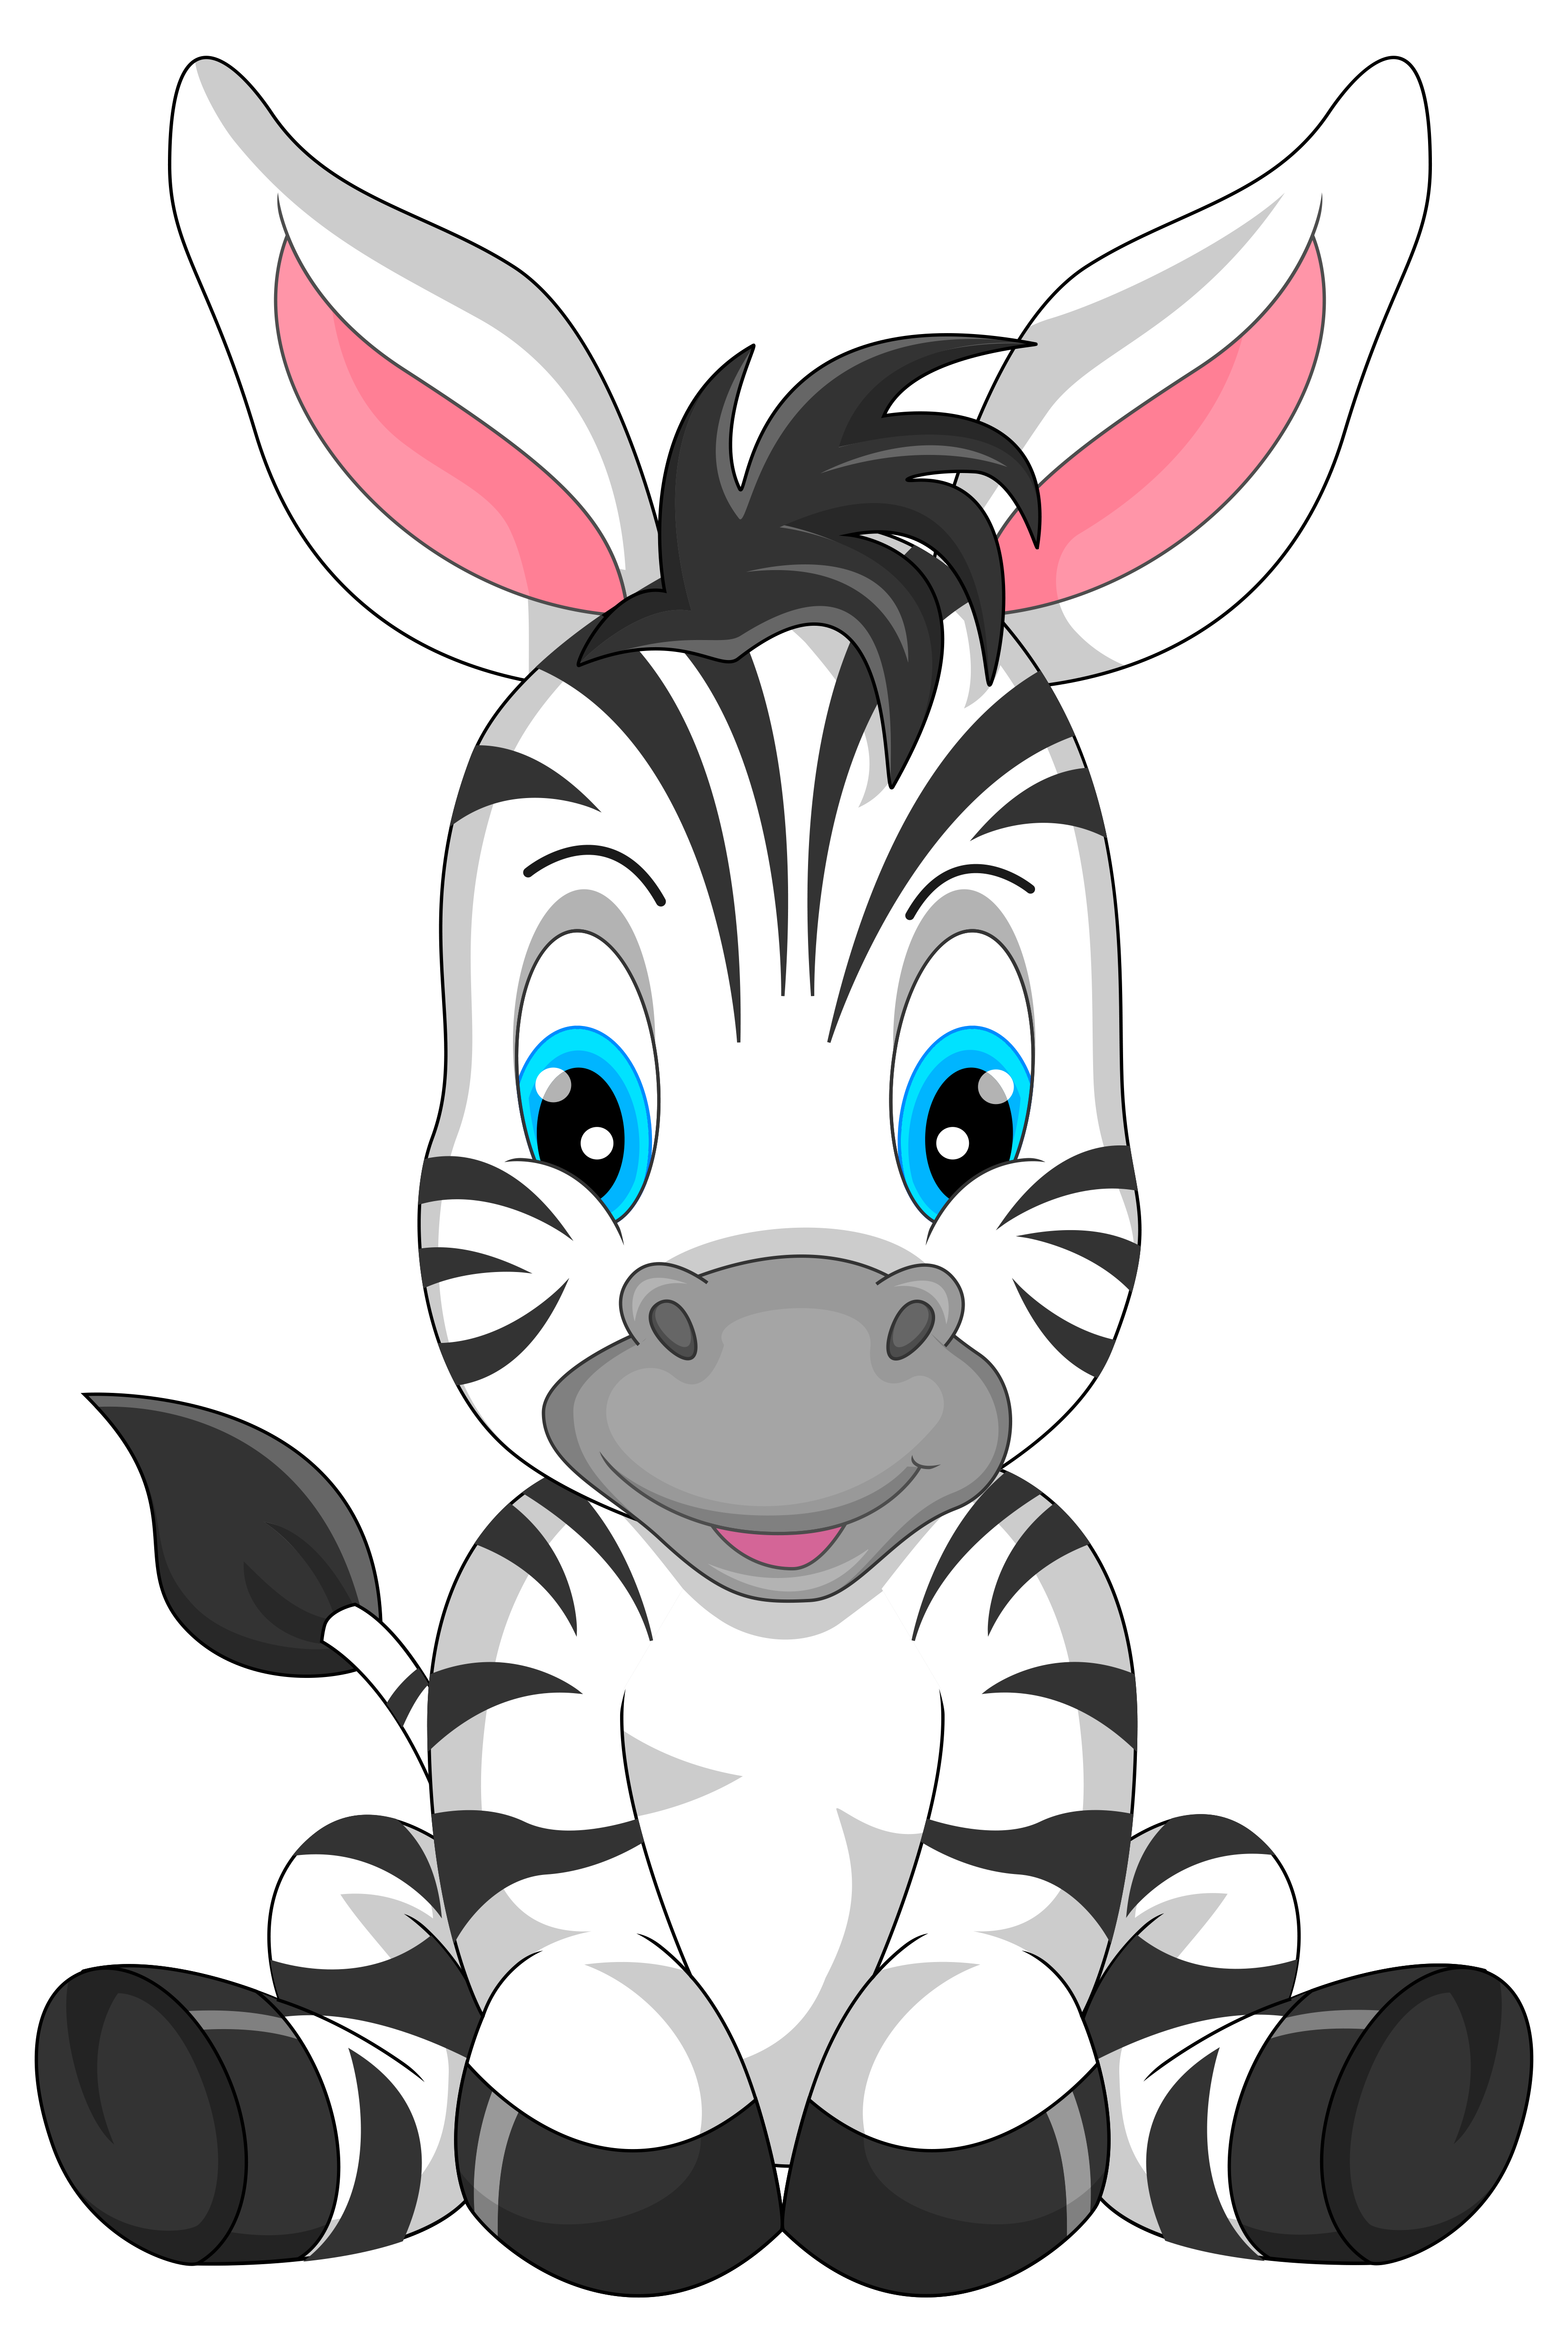 Halloween donkey clipart clip art download Cute Zebra Cartoon PNG Clipart Image | Gallery Yopriceville - High ... clip art download